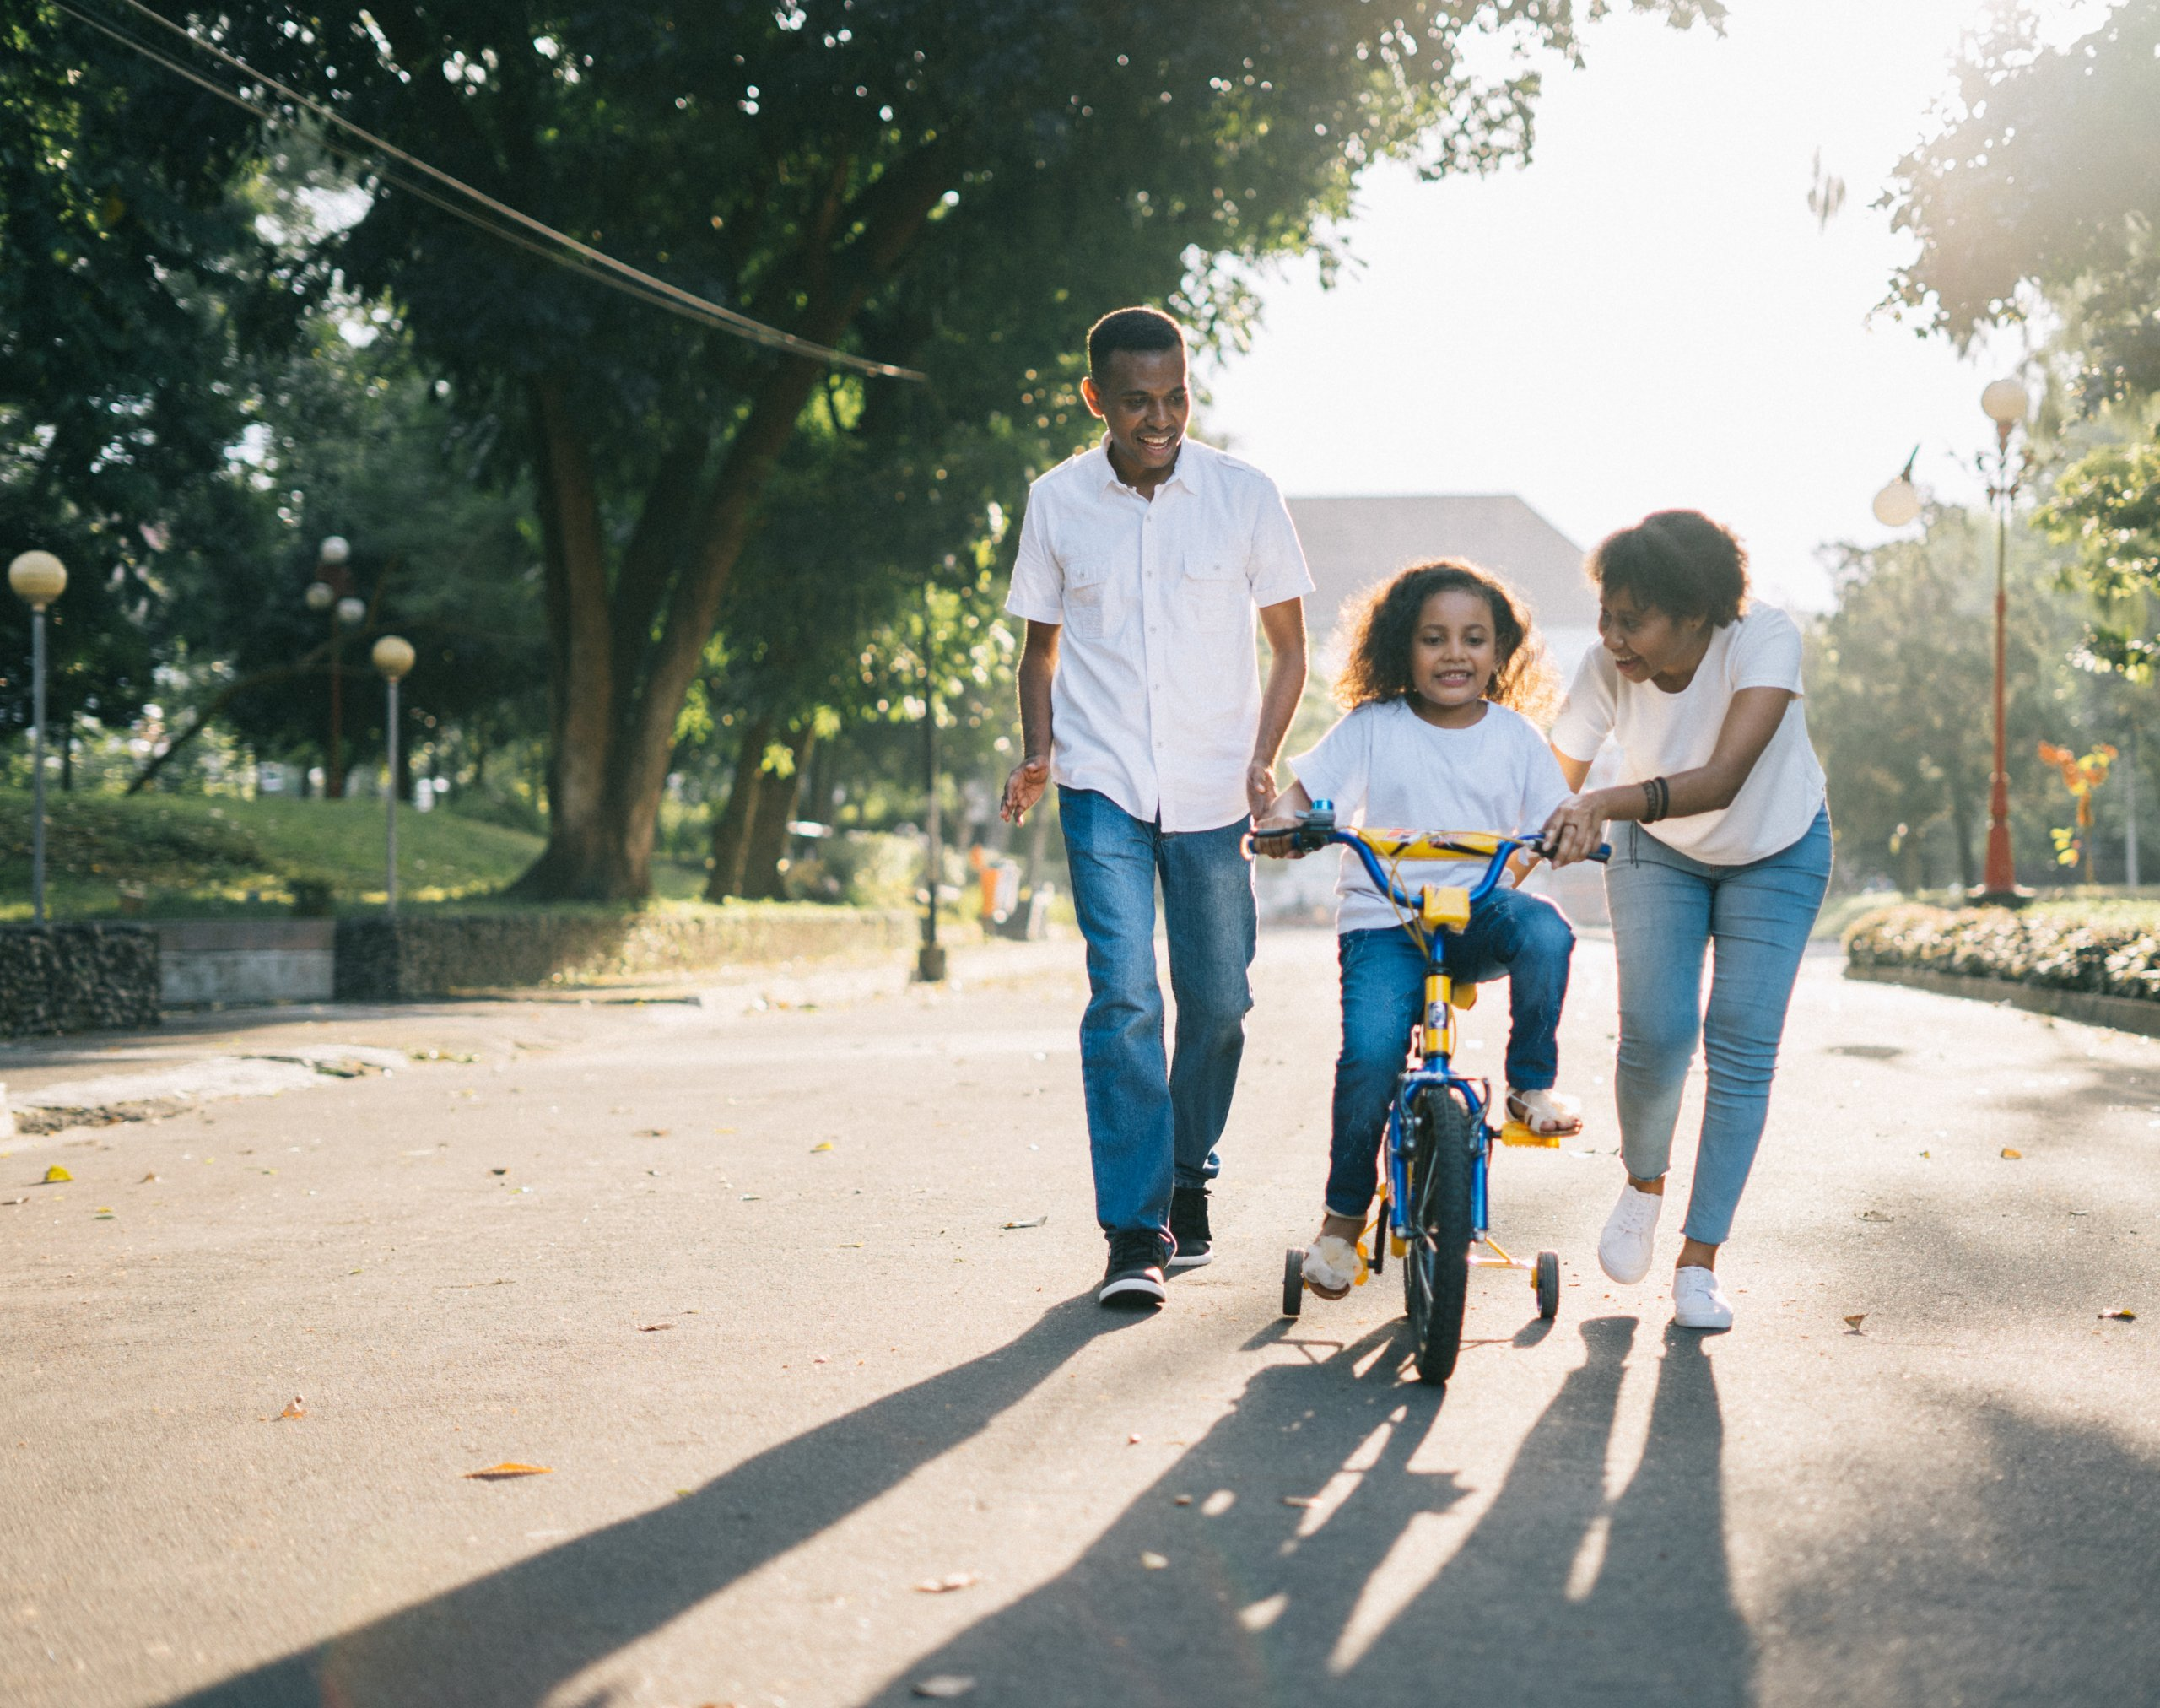 a couple with a child on a bike